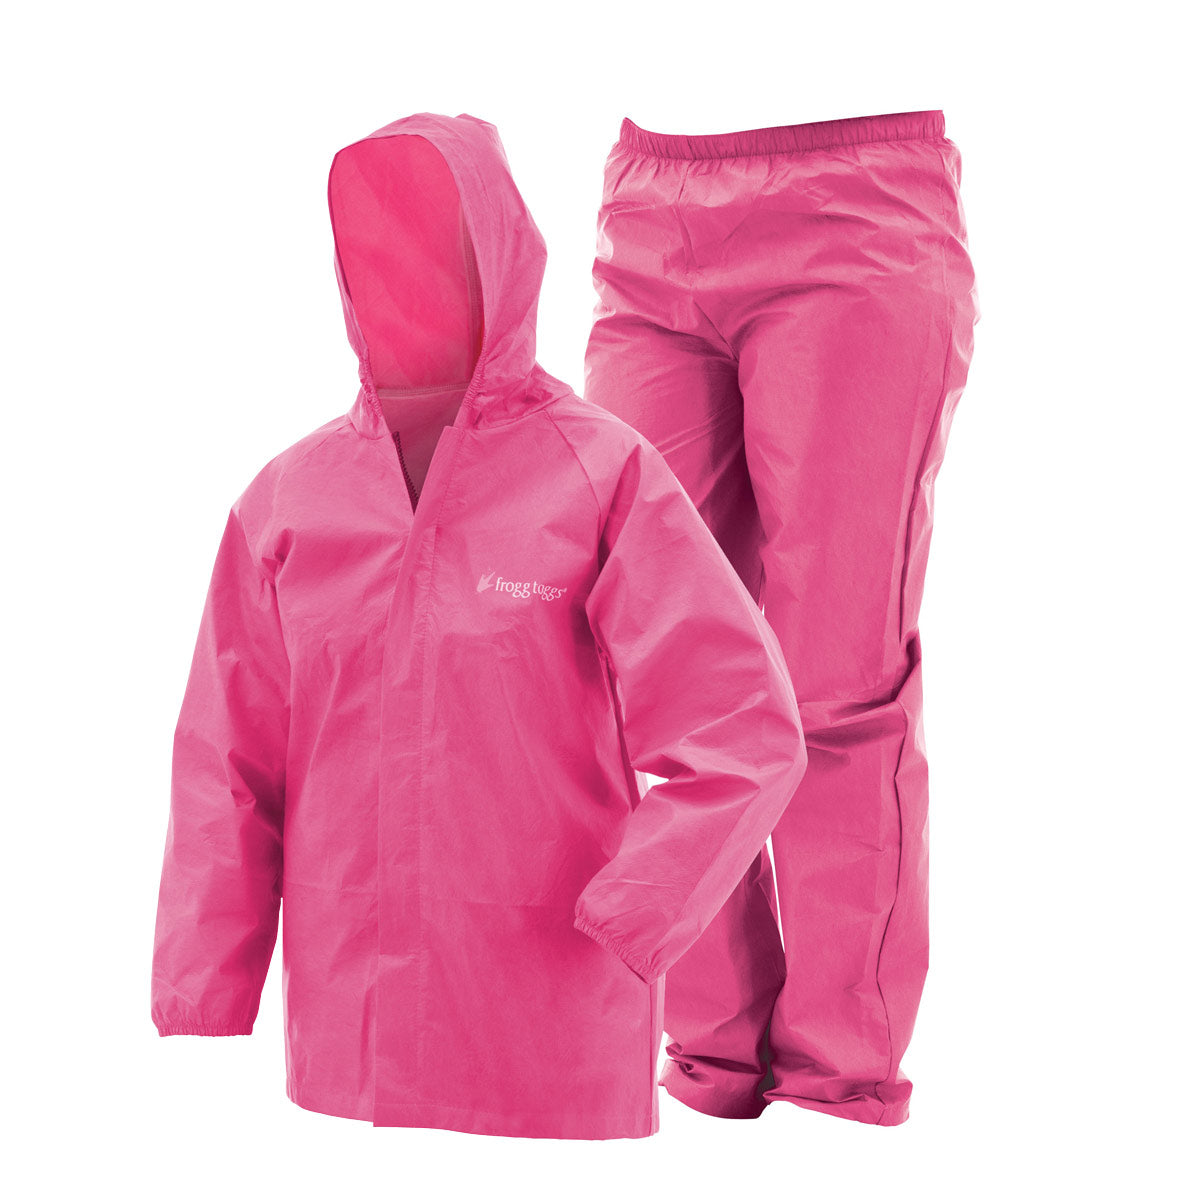 Frogg Toggs Kids Ultra-Lite Rain Suit